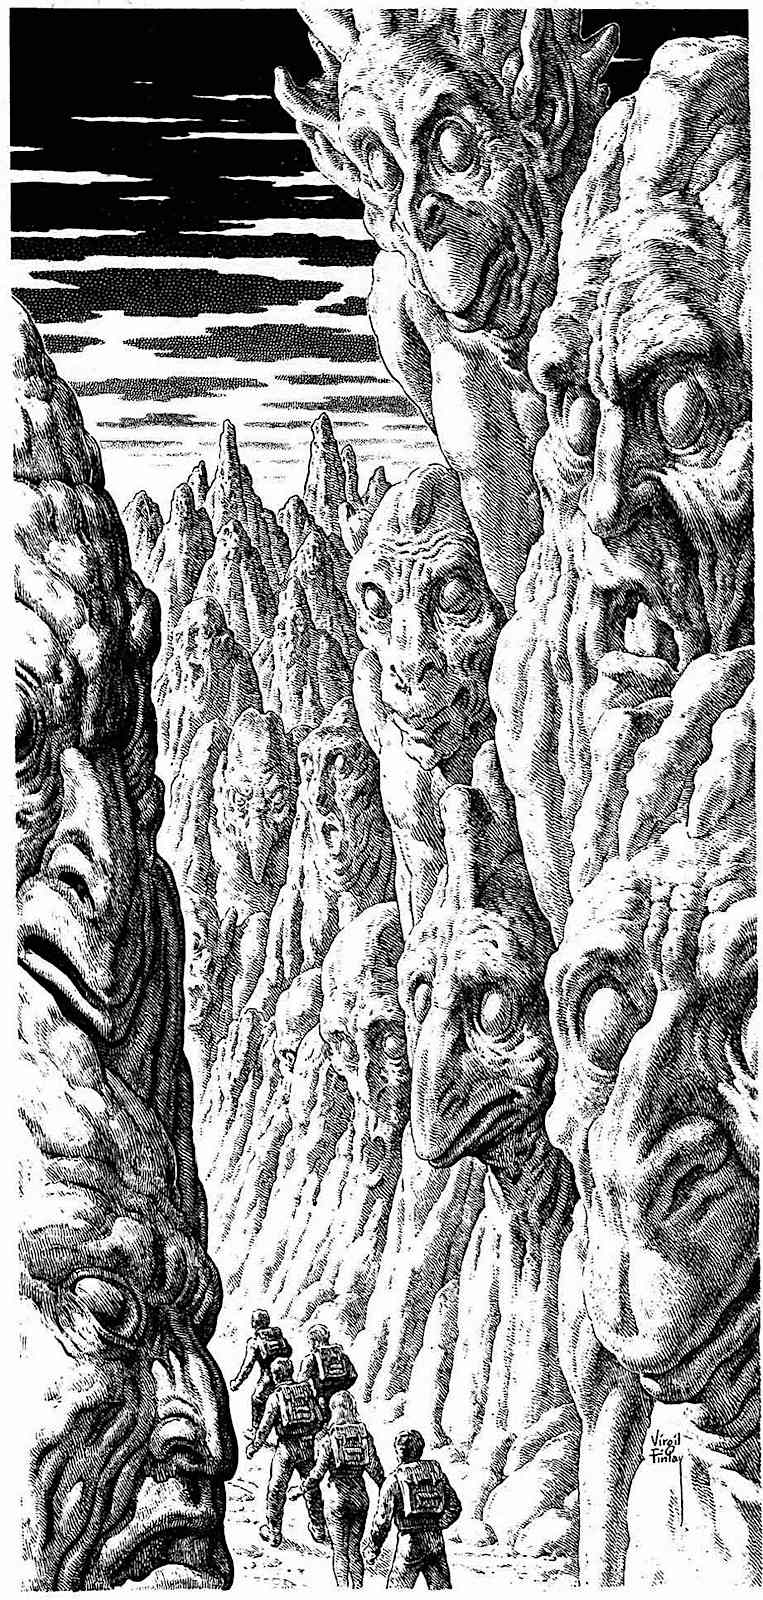 a Virgil Finley illustratio of hikers in a scary landscape of rocks and faces